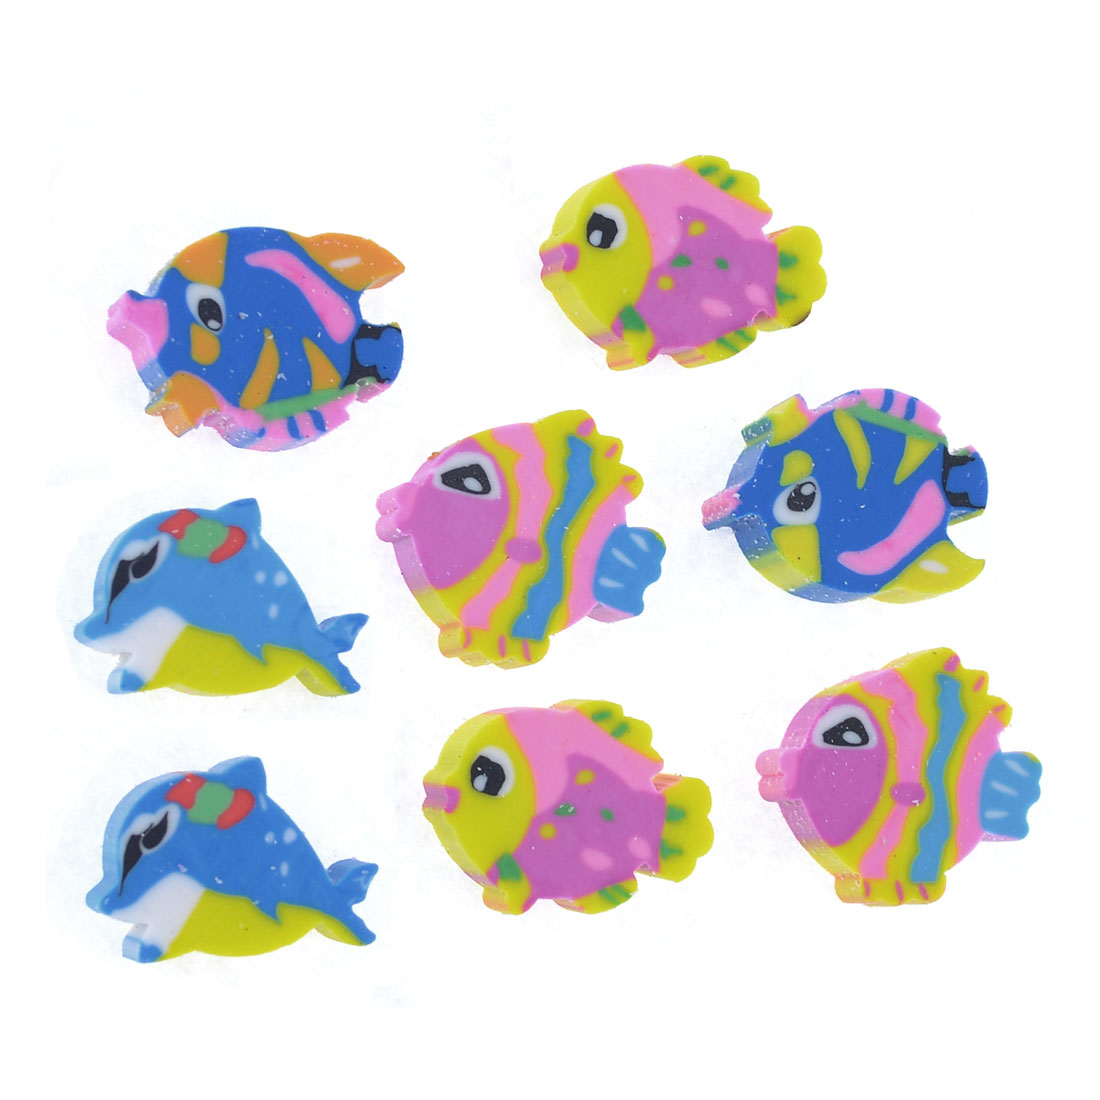 8 Pcs Colorful Fish Shaped Rubber Erasers for Student Child